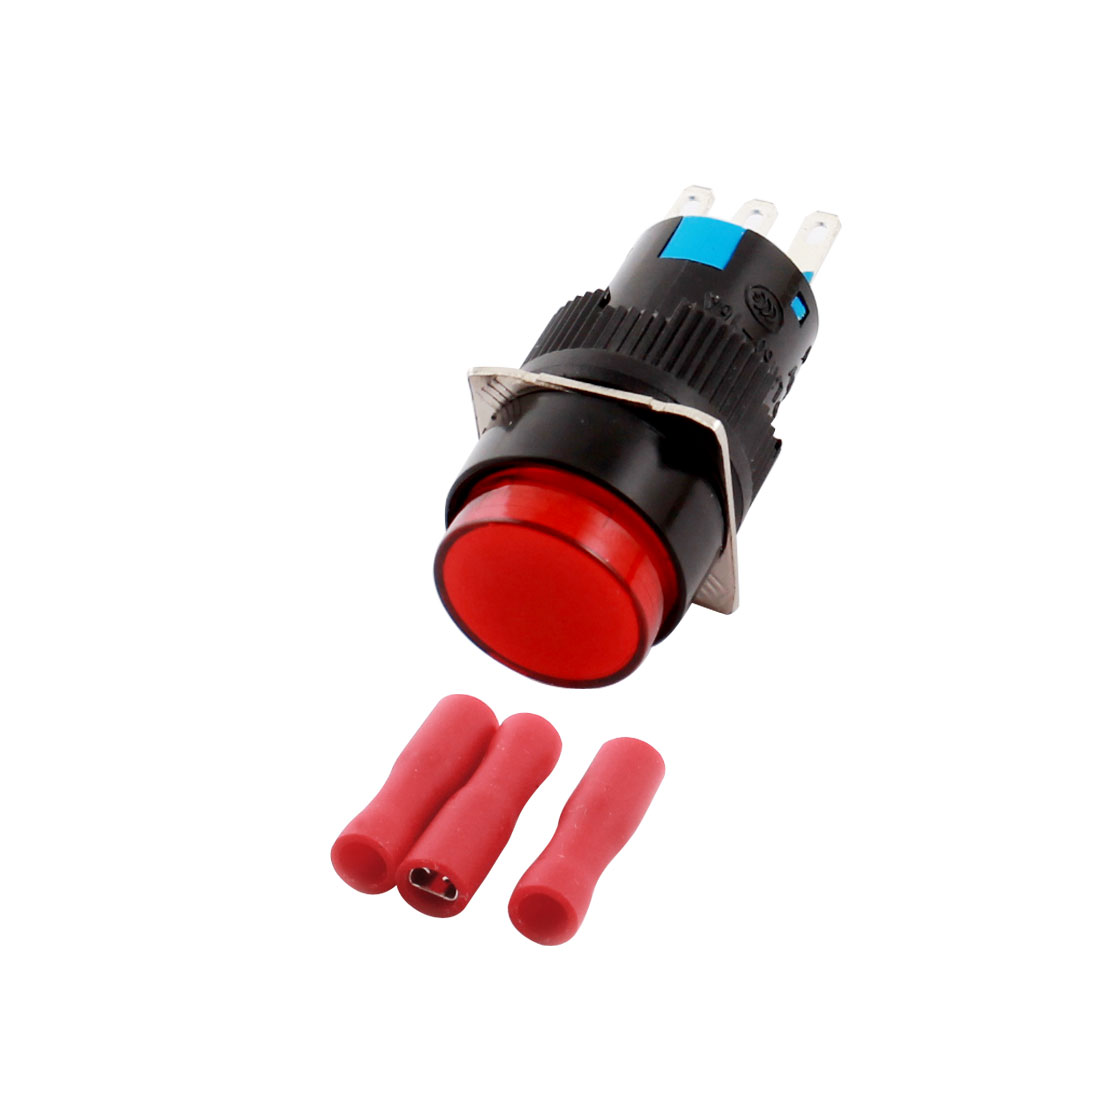 AC 250V 5A 3Pins 16mm Threaded Panel Mounted SPDT Red Button Latching Round Pushbutton Switch w 3pcs Female Connectors